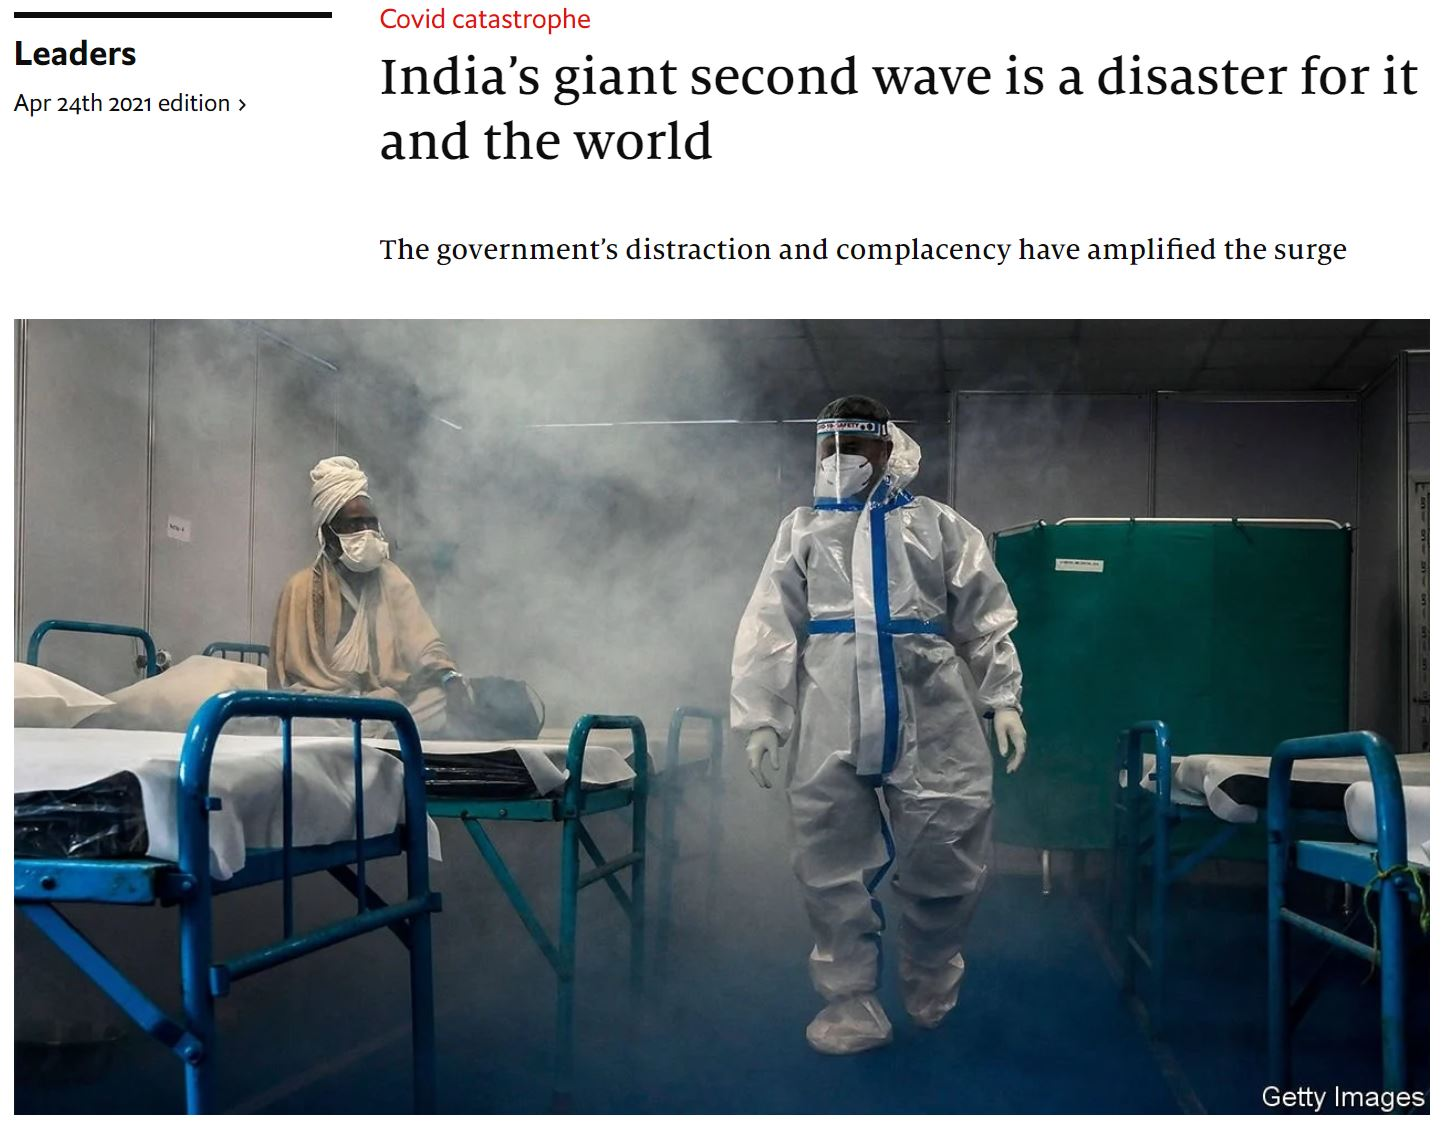 econ_2021-04-24_India's giant second wave is a disaster for it and the world